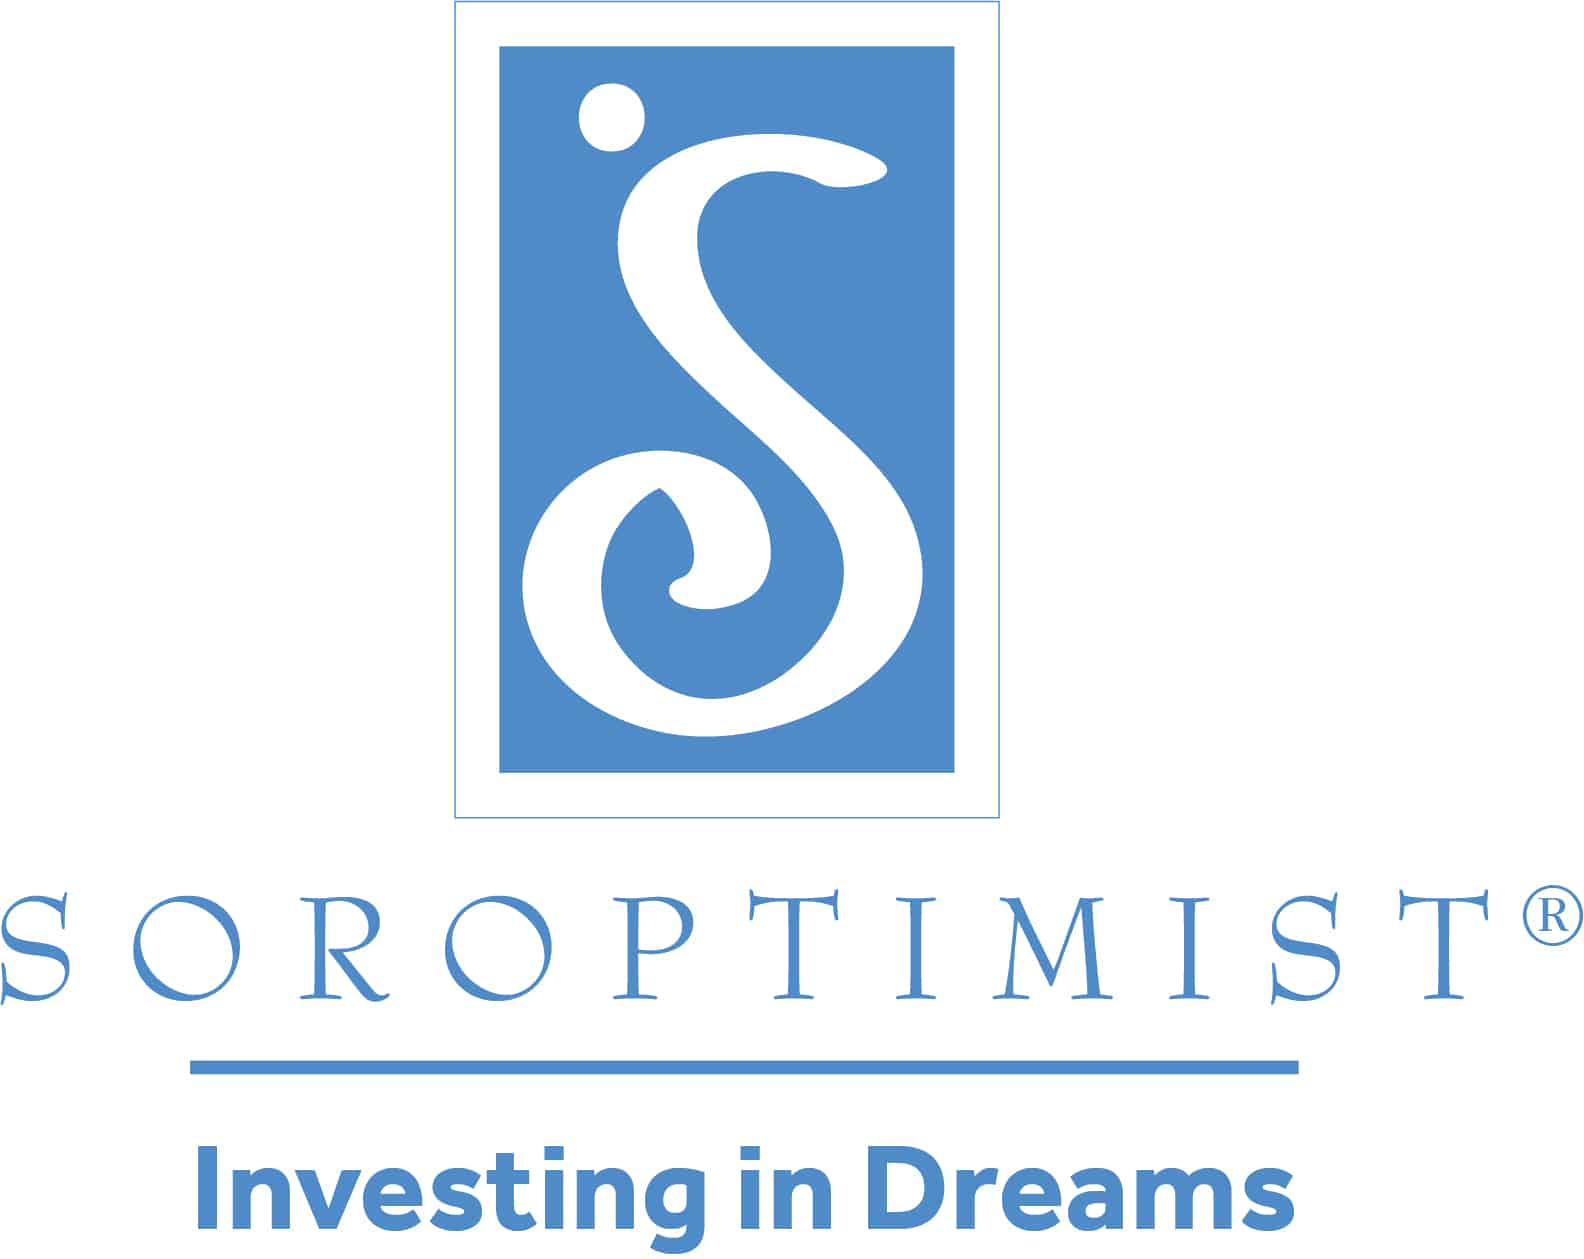 Soroptimist Logo and Tag Line